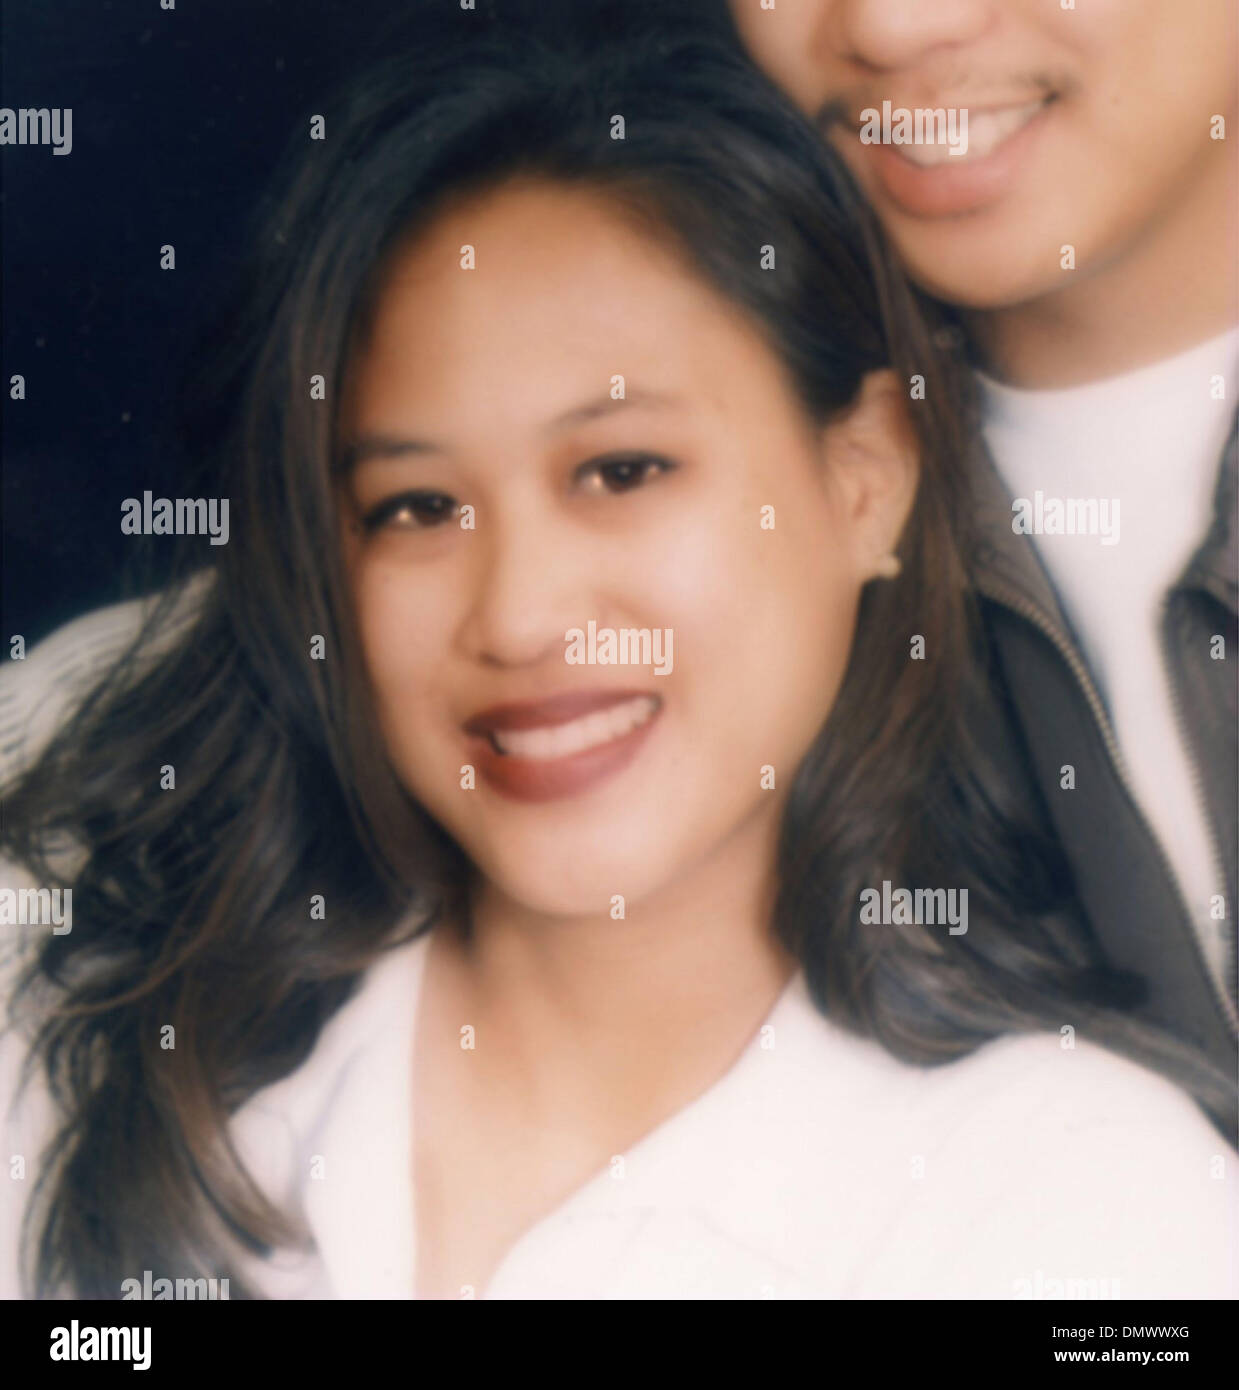 Jan 22, 2002; Oakland, MA, USA; 22-year-old Vanessa Lei Samson who Stock Photo: 64493368 - Alamy